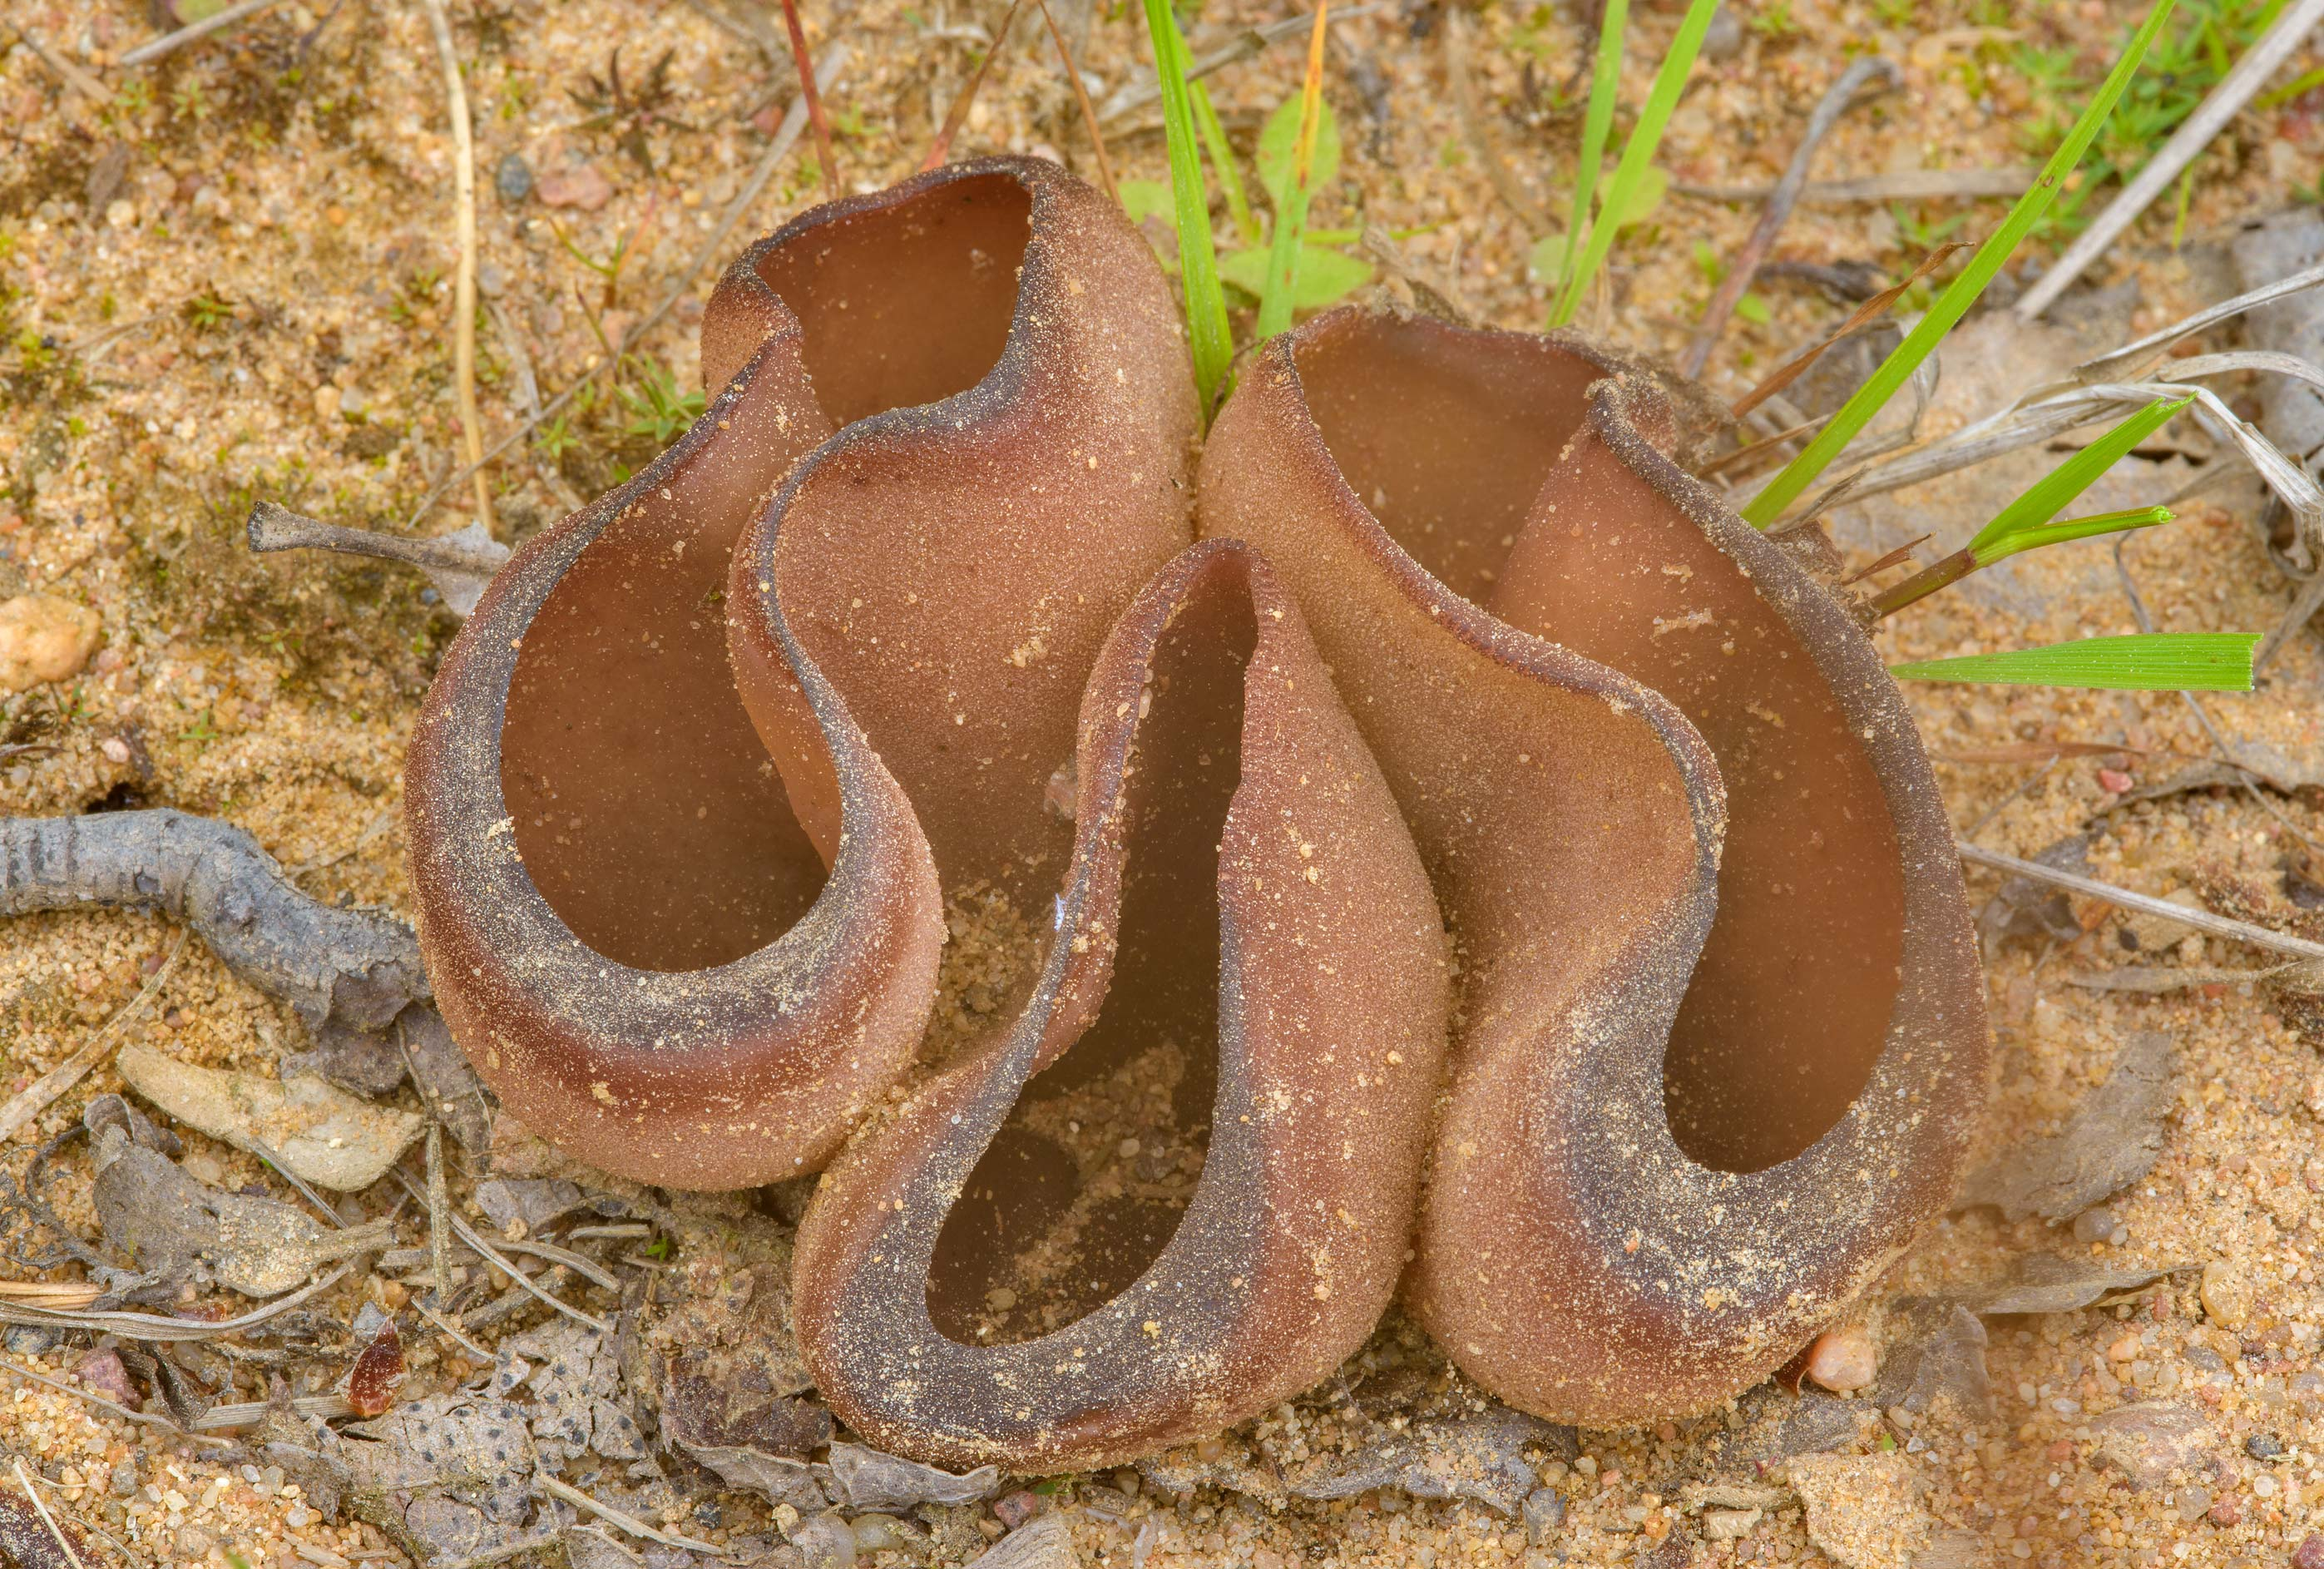 Bay cup mushrooms (Peziza badia) on sandy...miles north from St.Petersburg. Russia